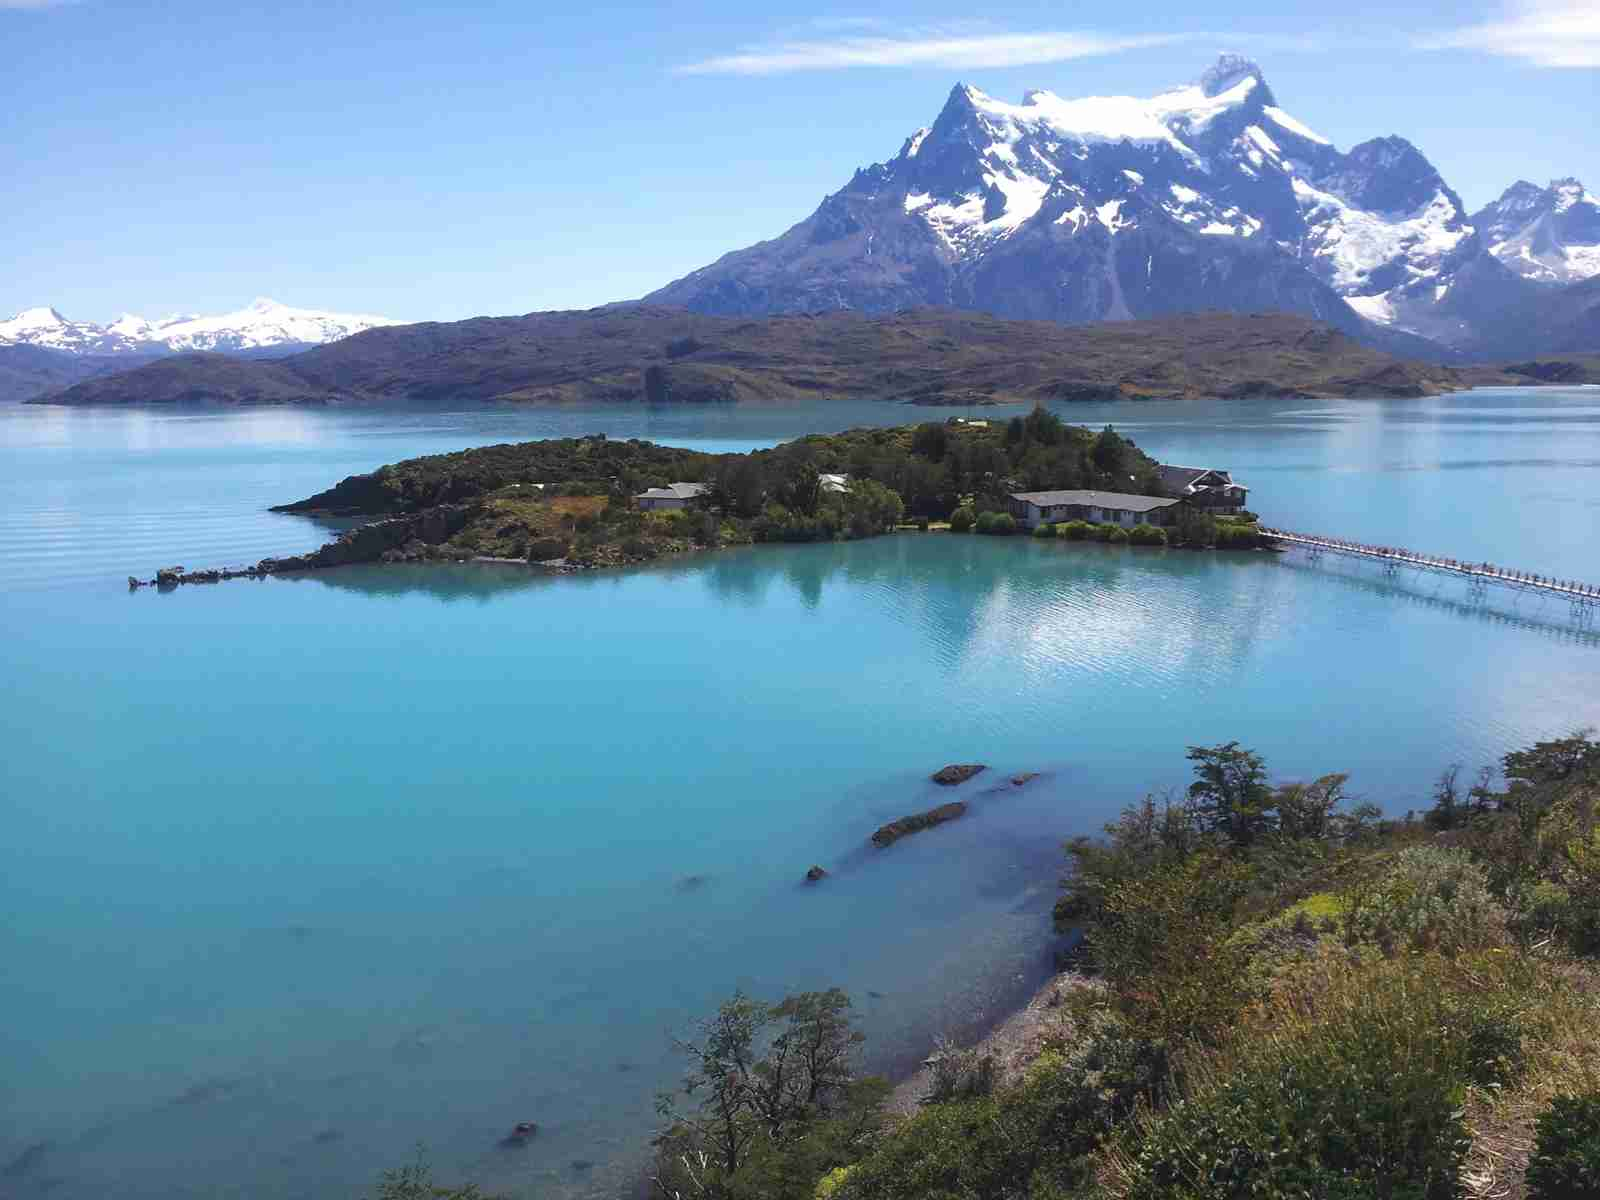 Chilean Patagonia. (Photo by Jorge Pea / EyeEm / Getty)